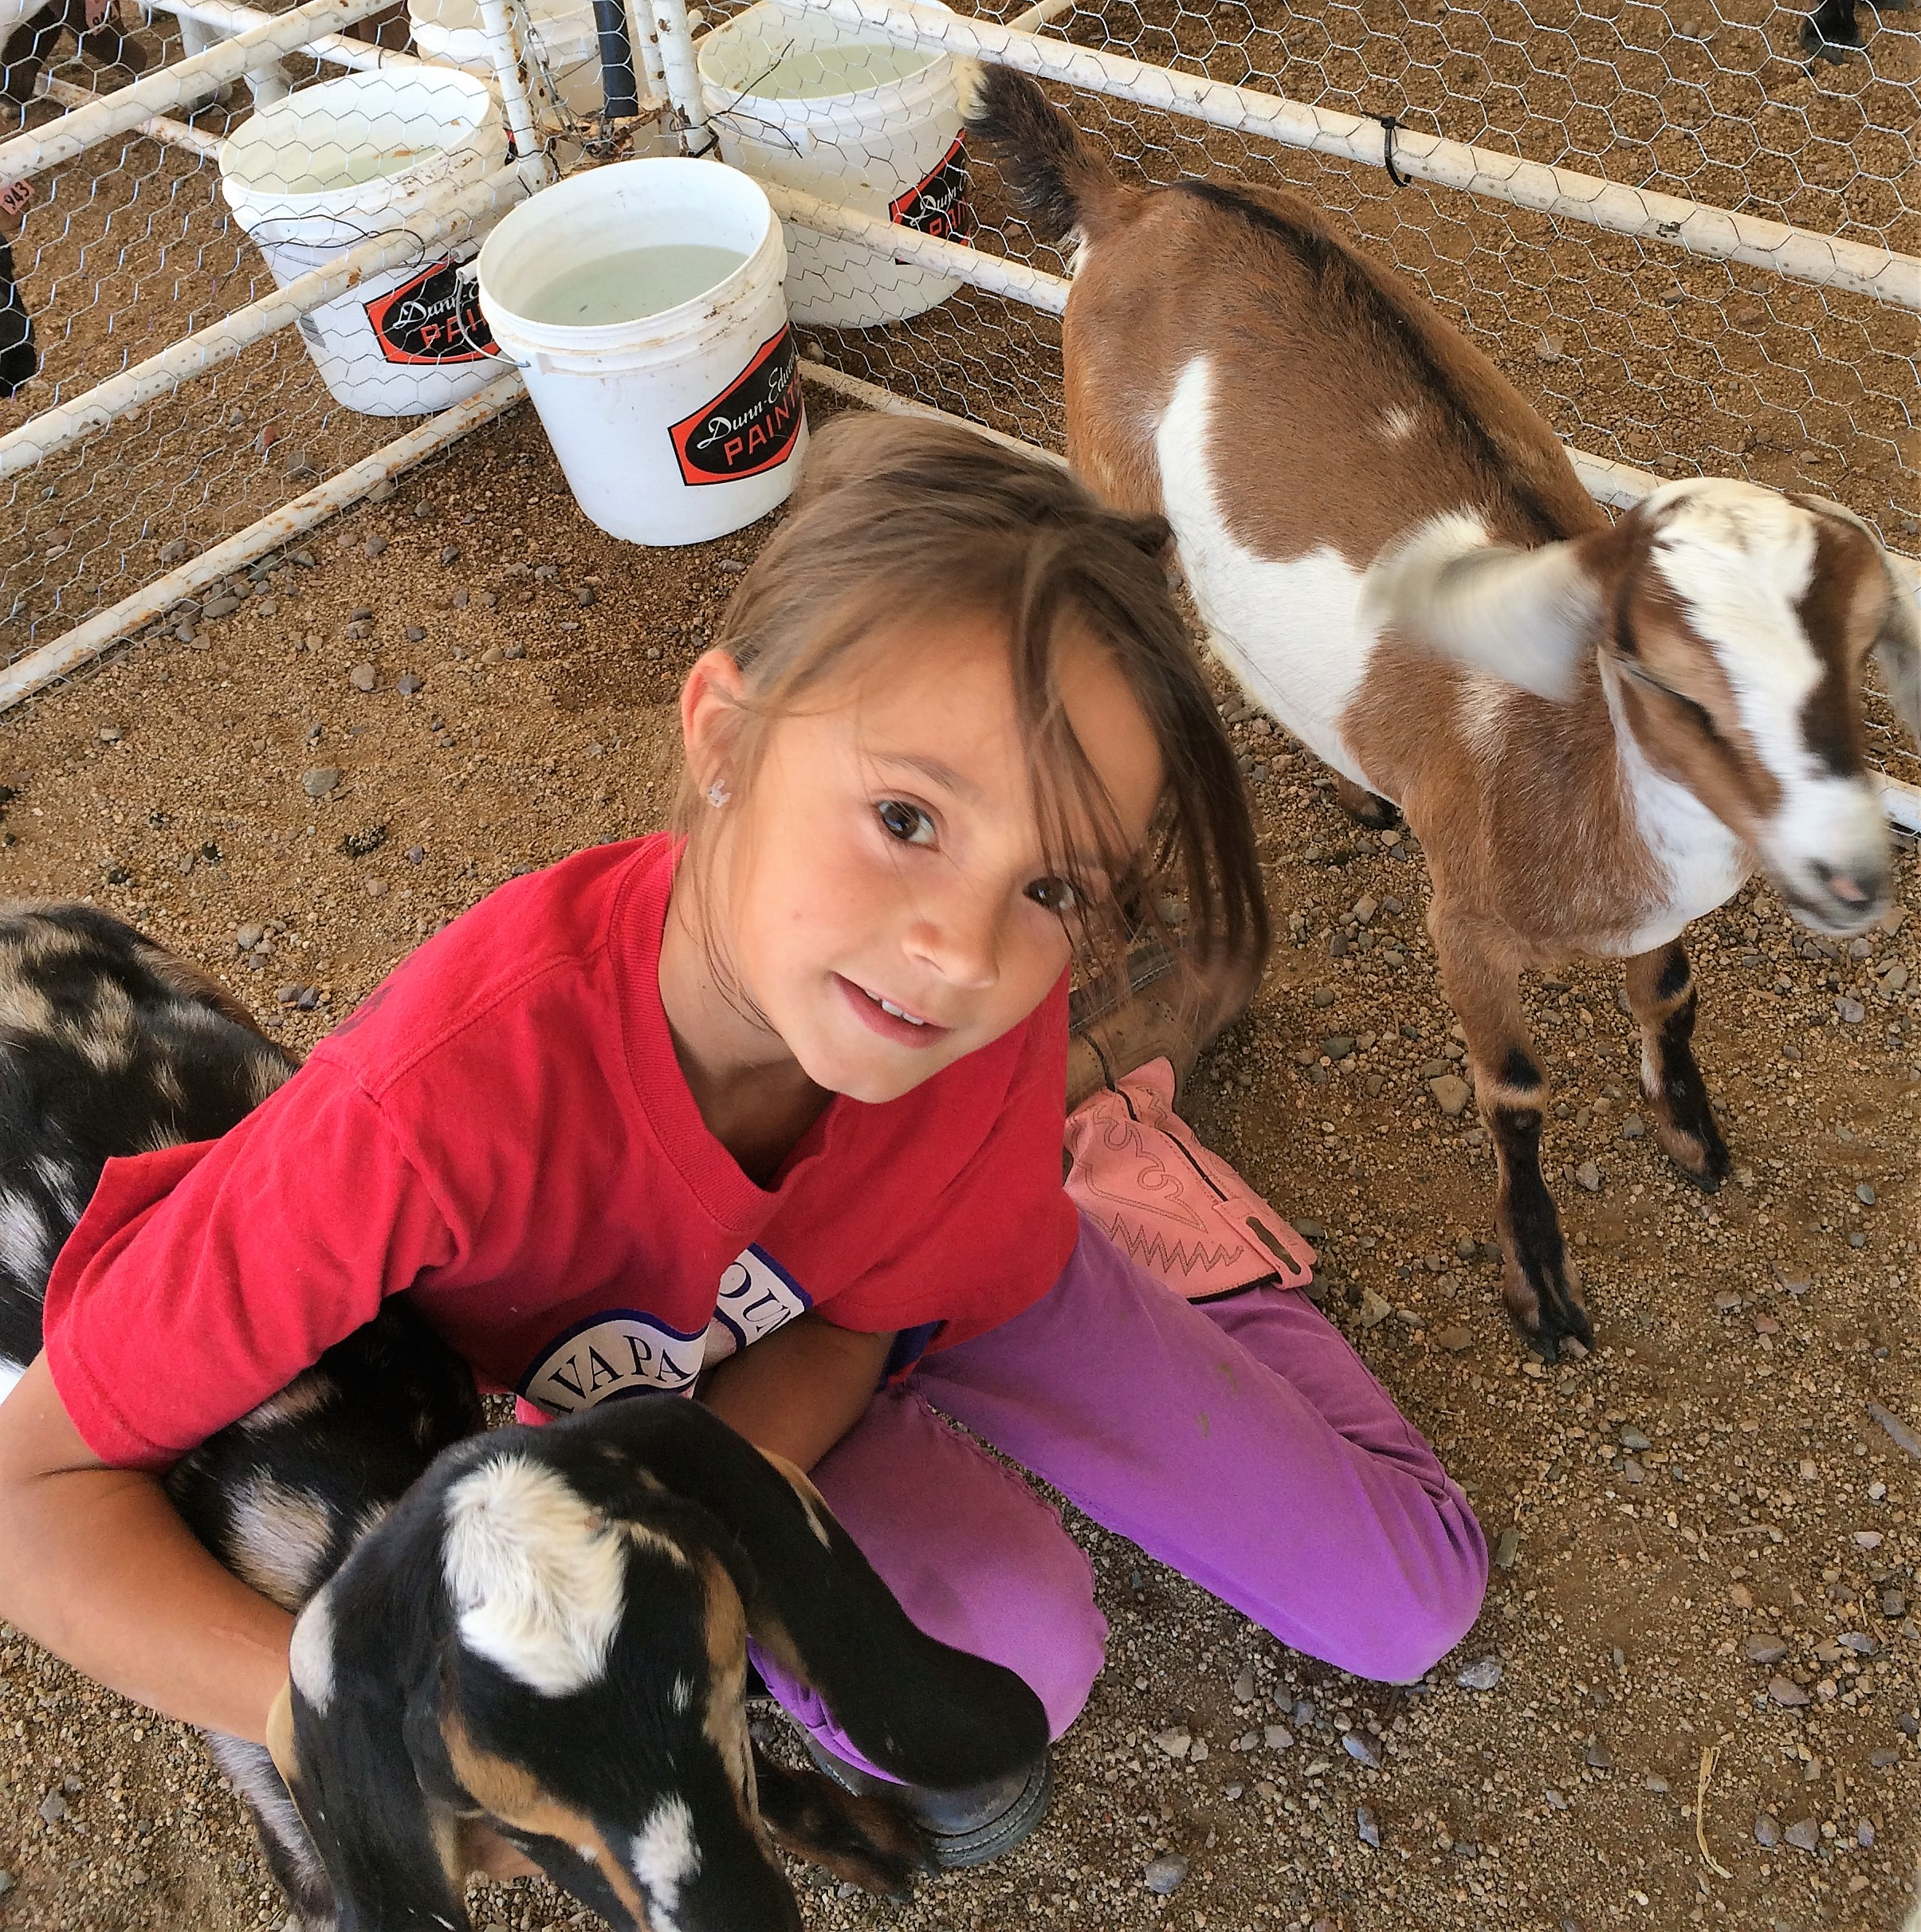 What happens to all that animal waste at the county fair?